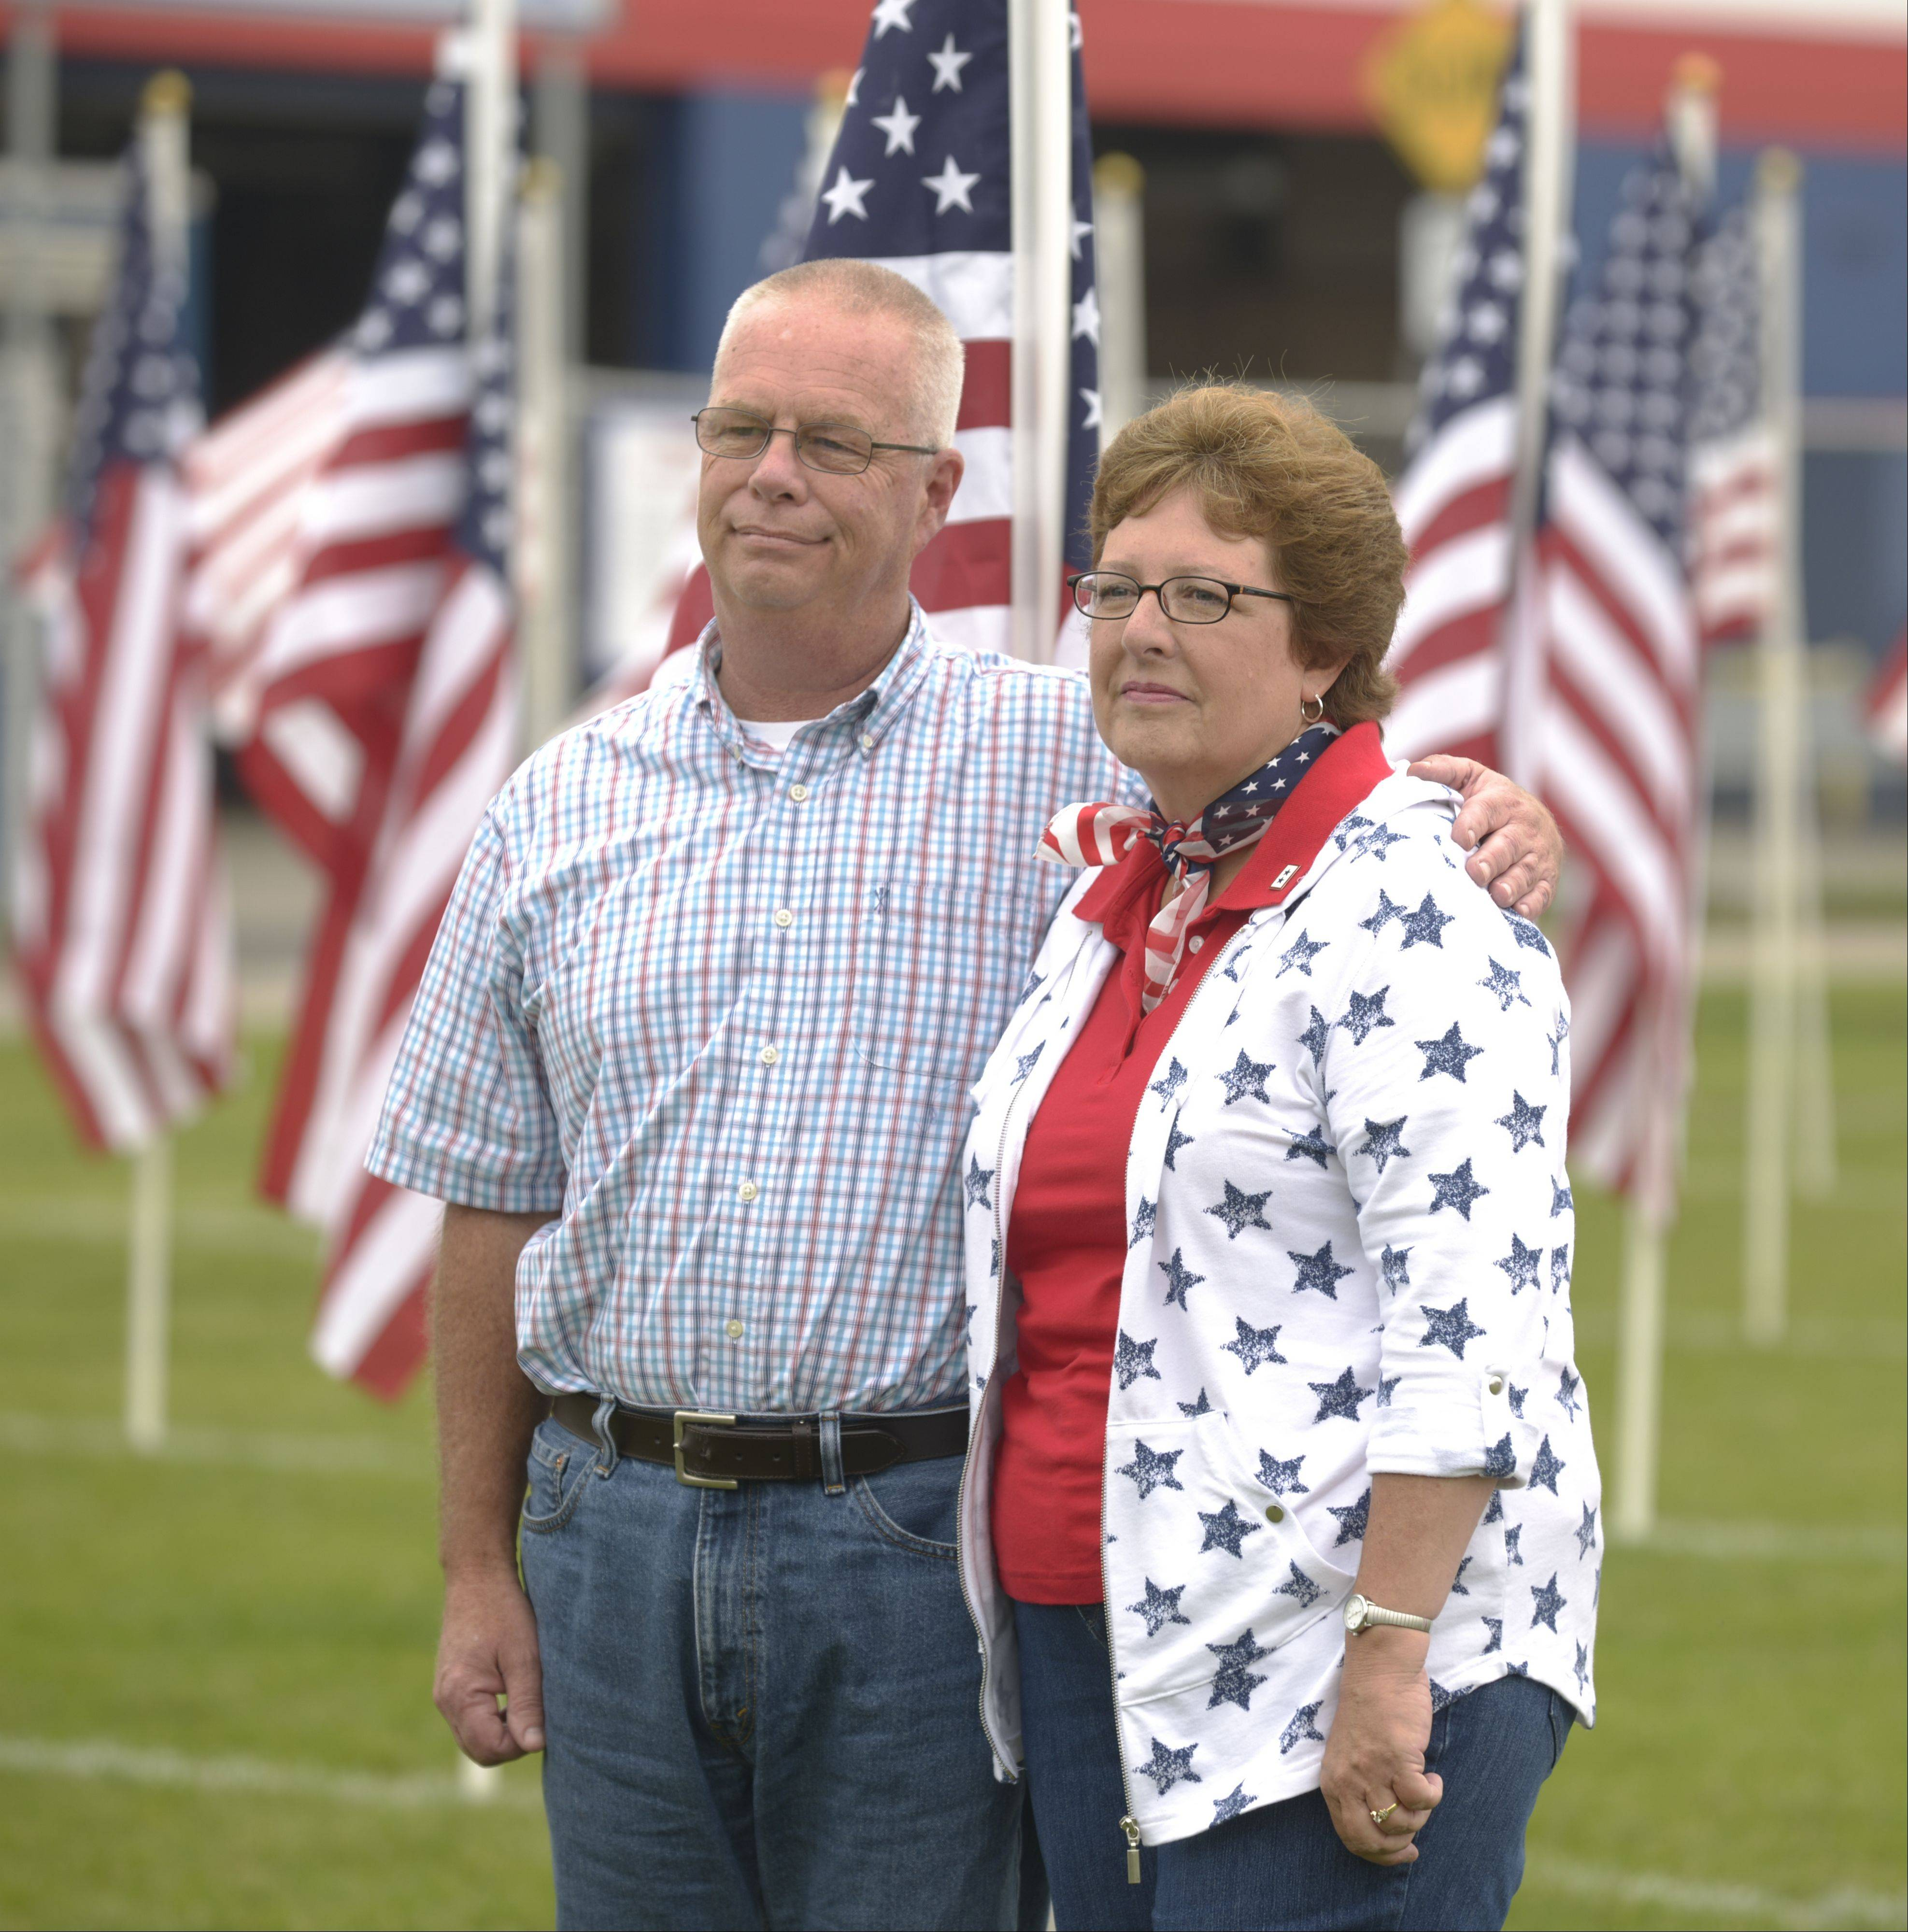 Ron and Debbie Ritter stand among a small field of flags Friday during a ceremony in advance of the Healing Field of Honor to be held Nov. 3 to 13 at West Aurora High School. The Ritters' two sons are in the service, Robert in the Navy and Raymond in the Coast Guard.